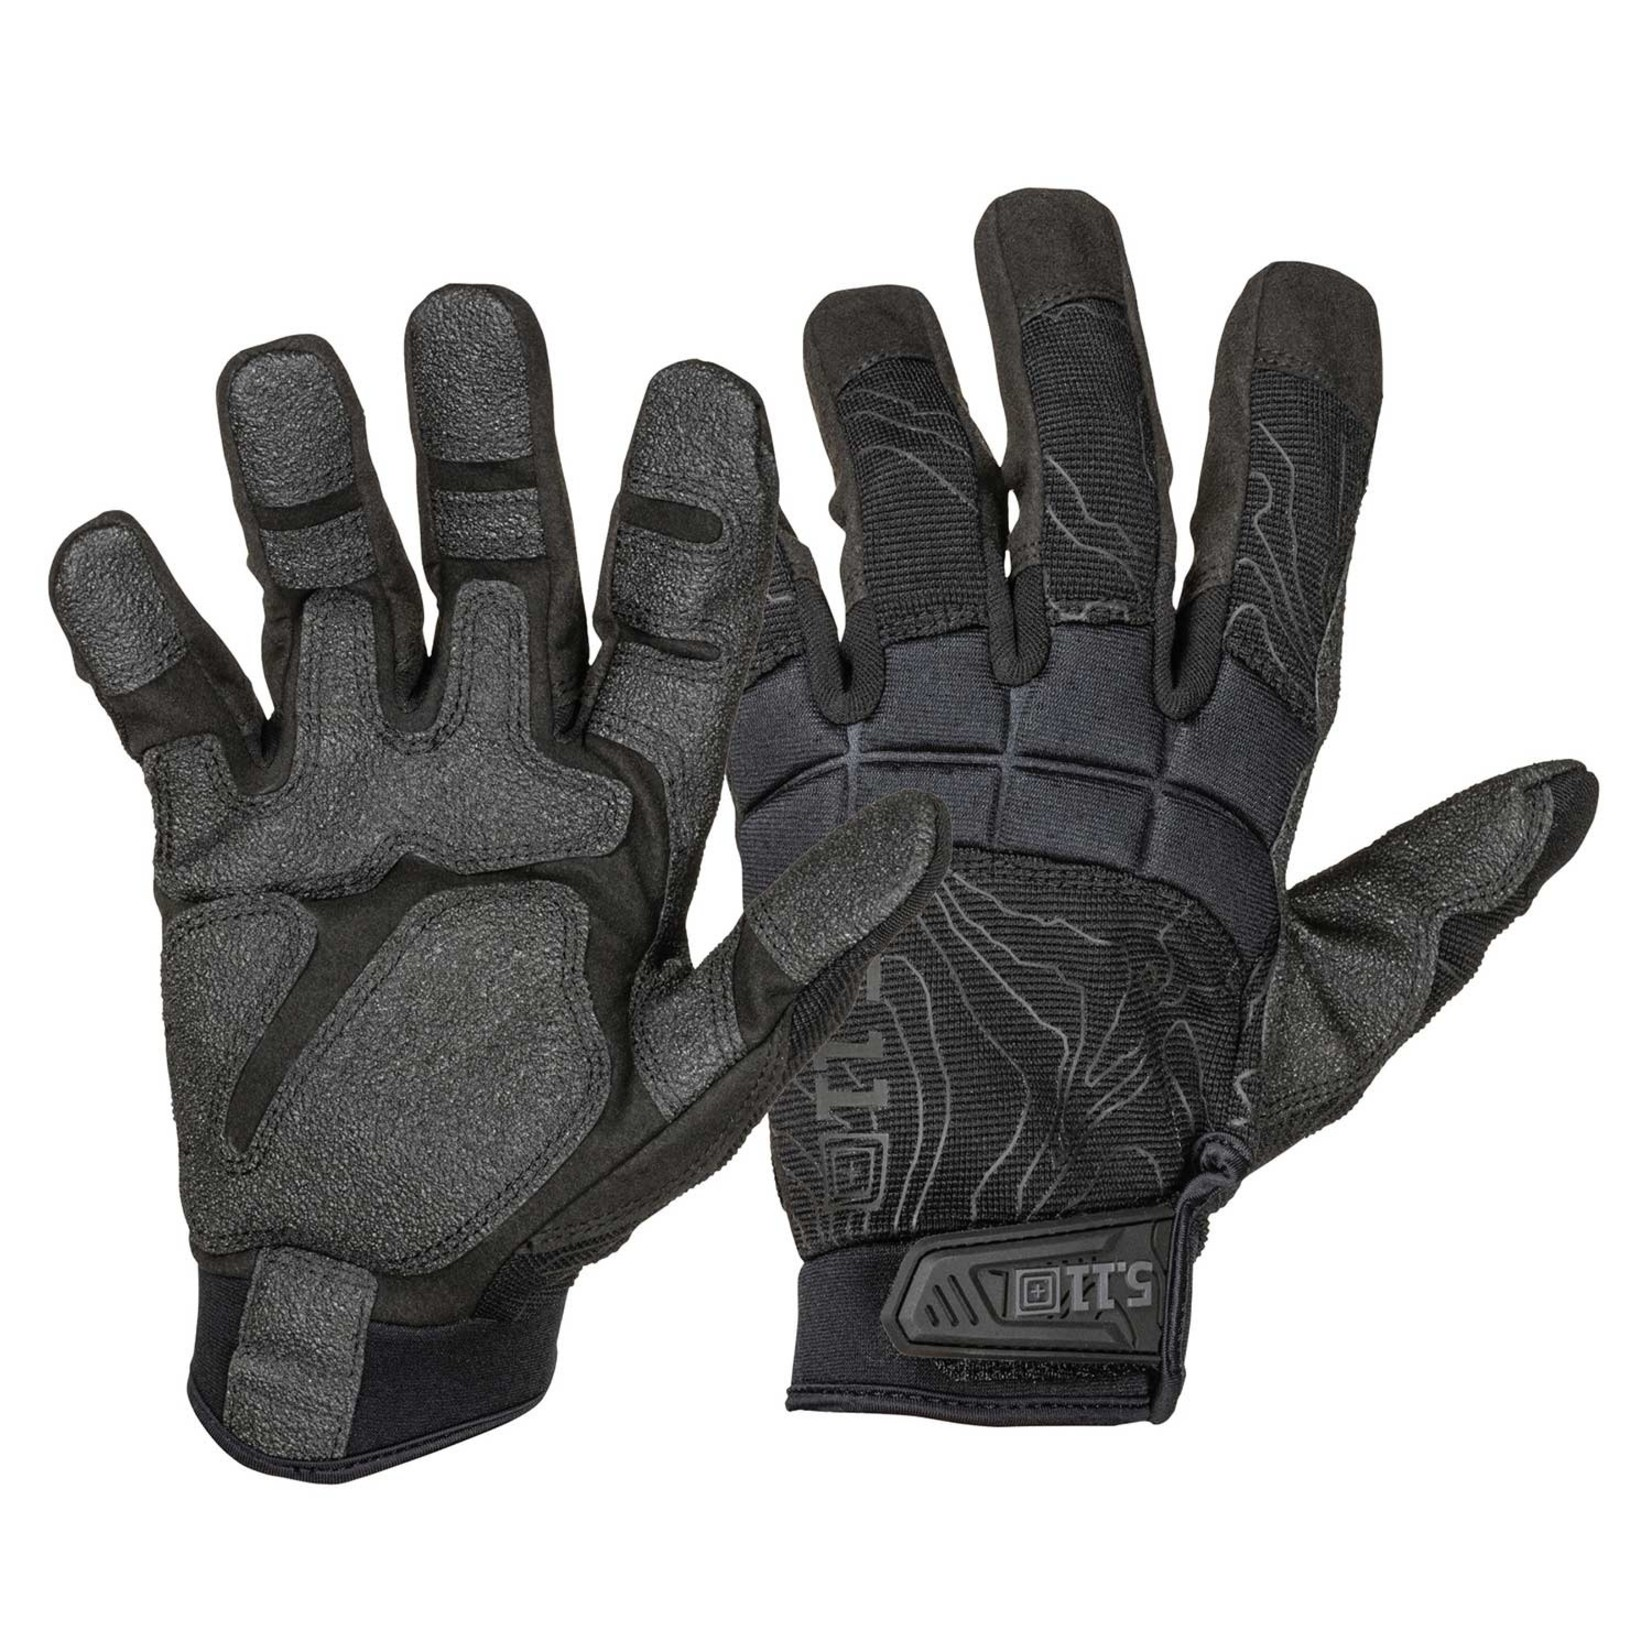 5.11 Tactical 5.11 Station Grip 2 Glove